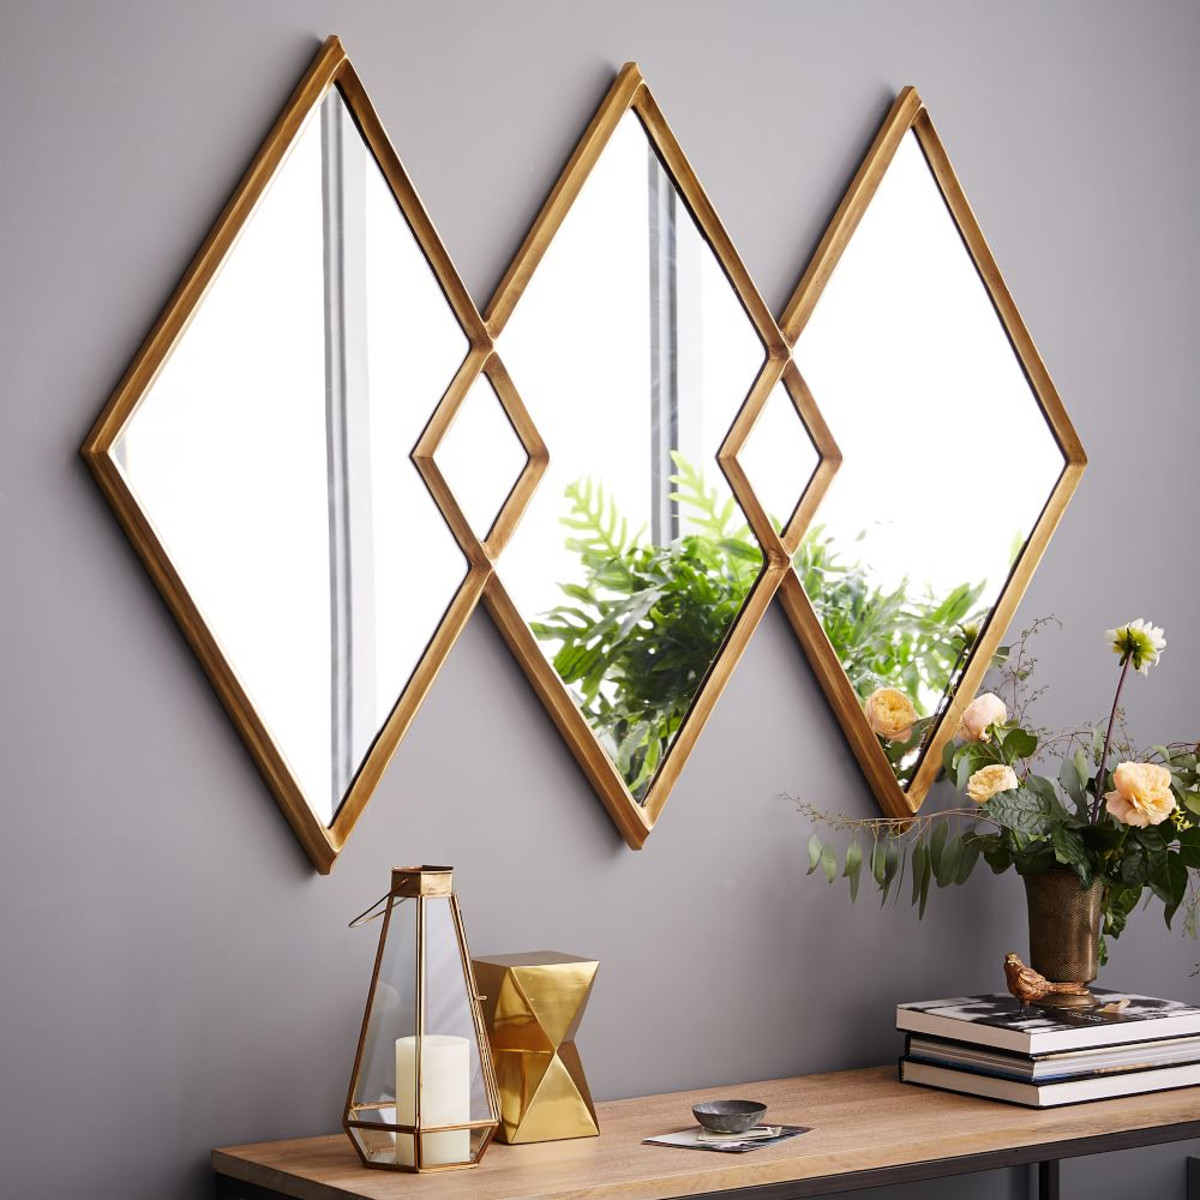 Unique Shaped Mirror 3 39lü Ayna Seti Modelleri Secrethome